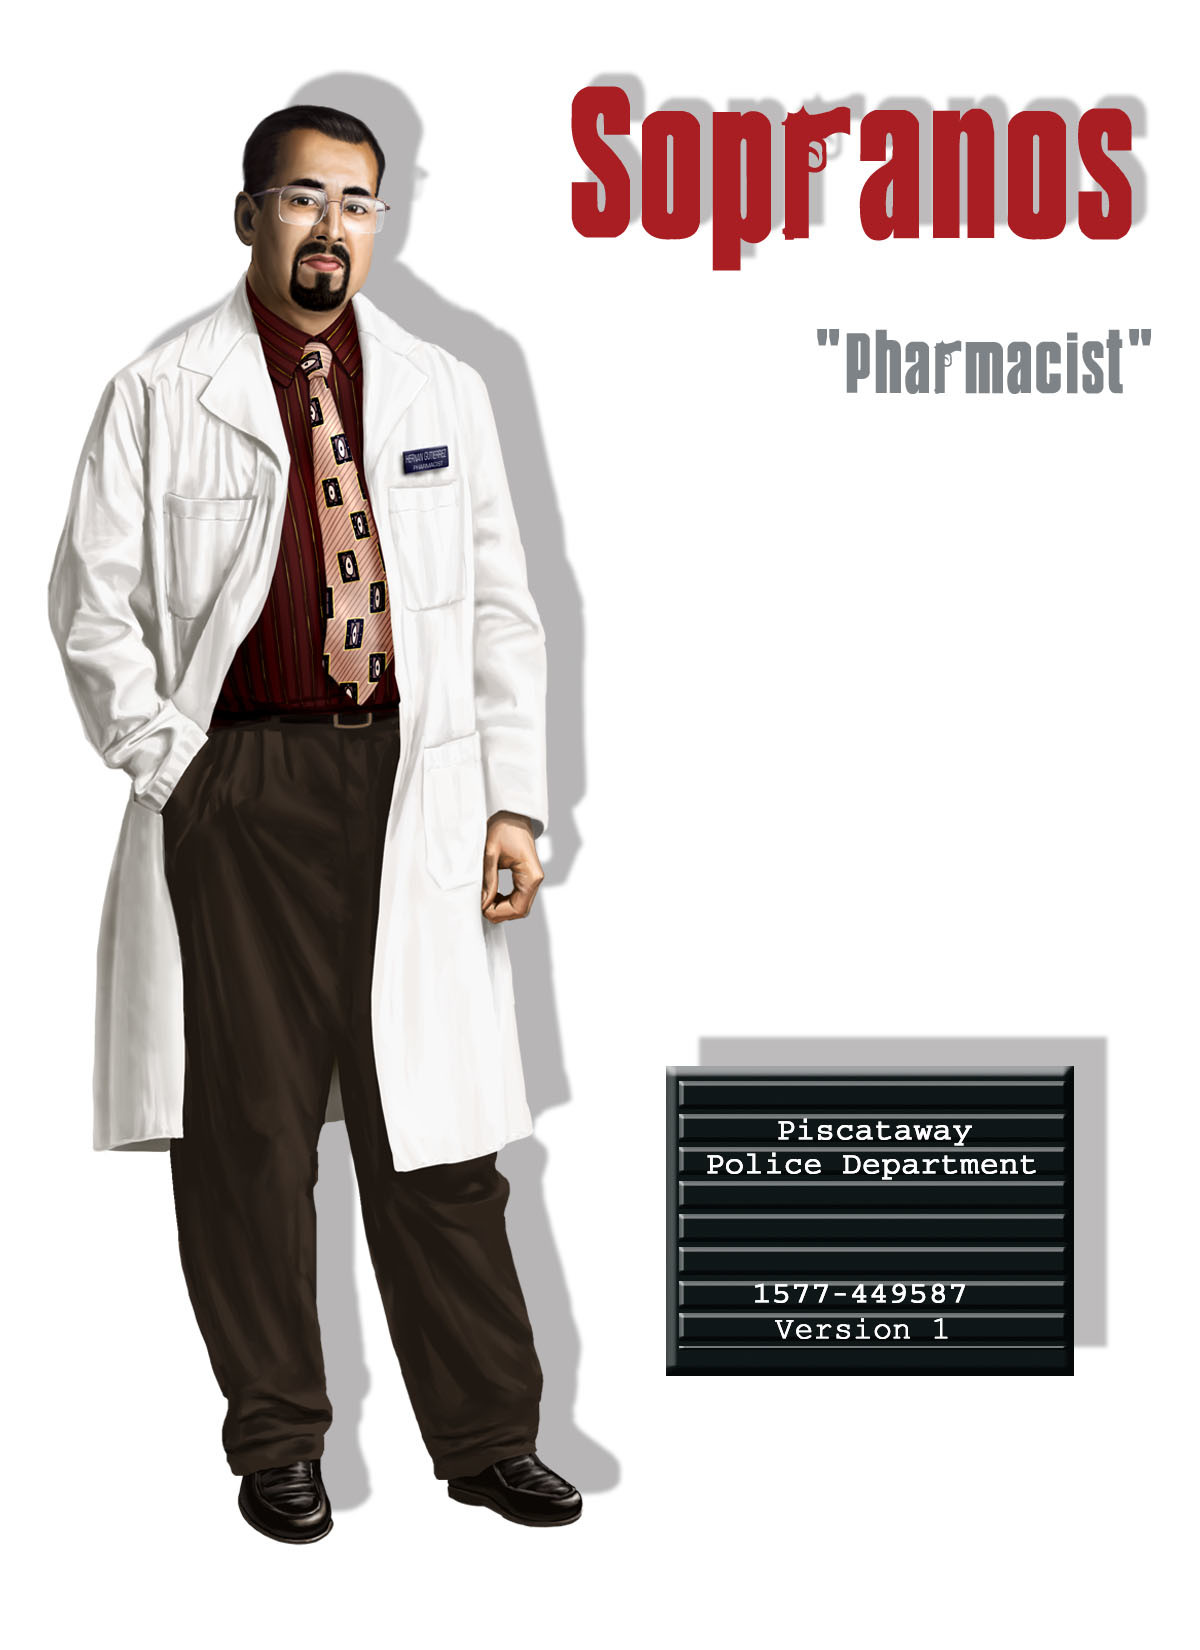 Jeff zugale pharmacist concept v1